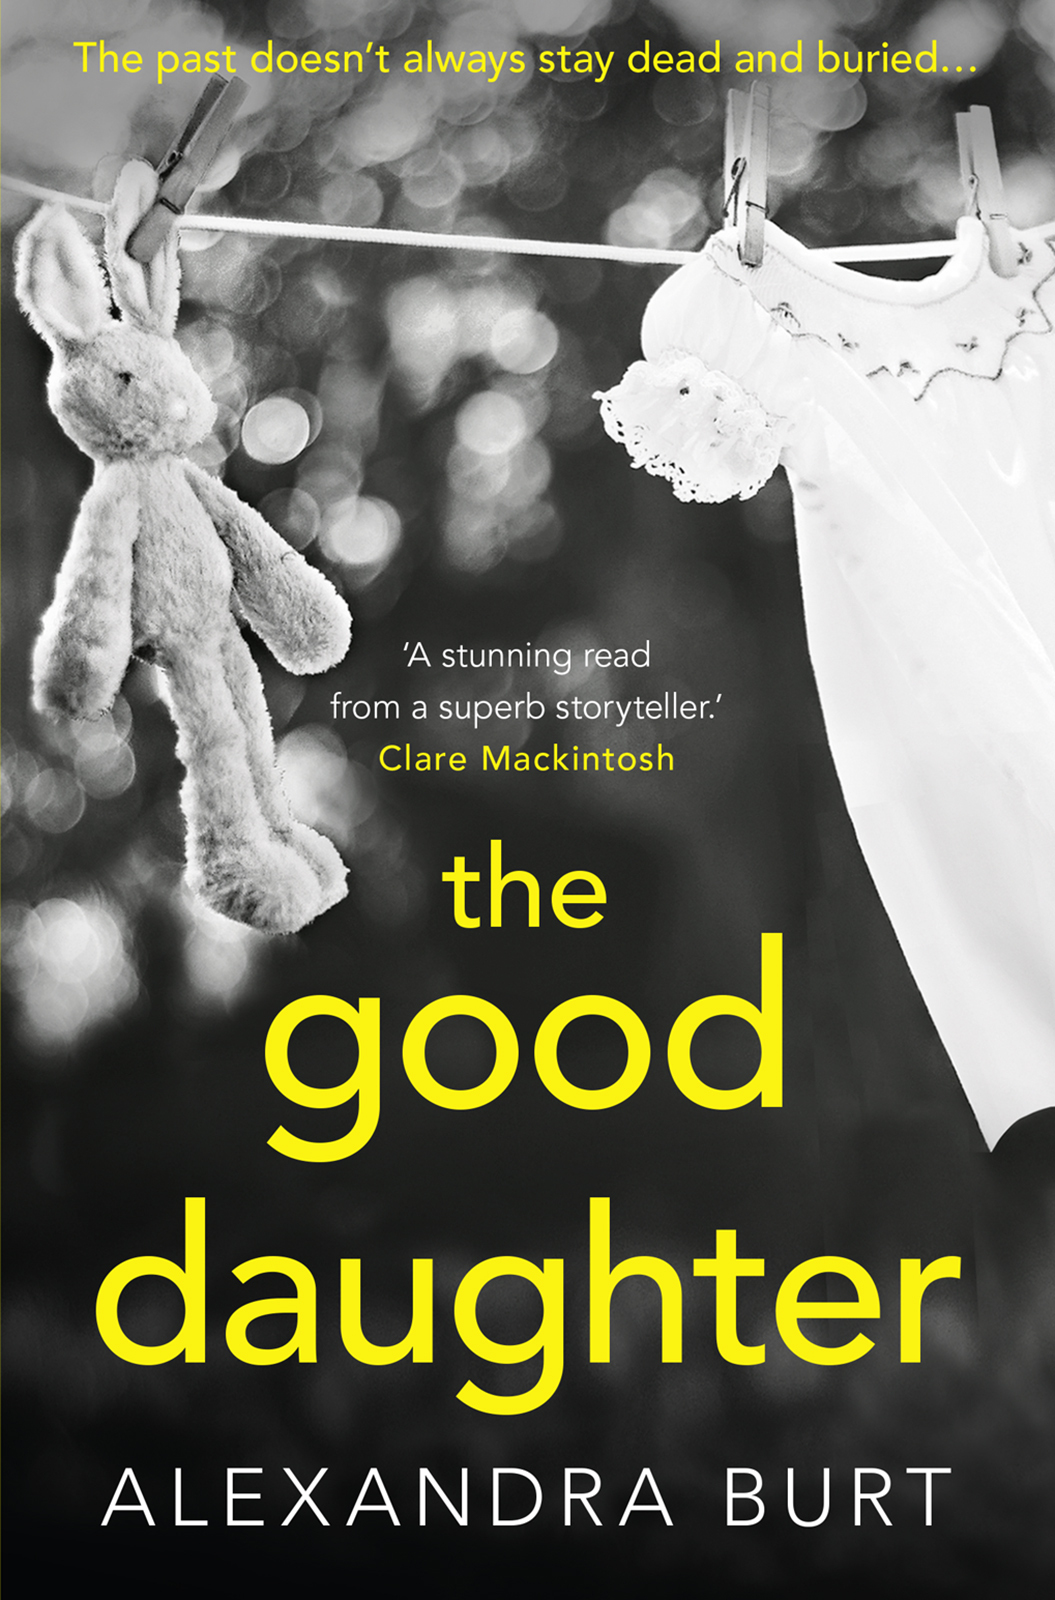 Alexandra Burt The Good Daughter: A gripping, suspenseful, page-turning thriller гладильная доска dogrular элона